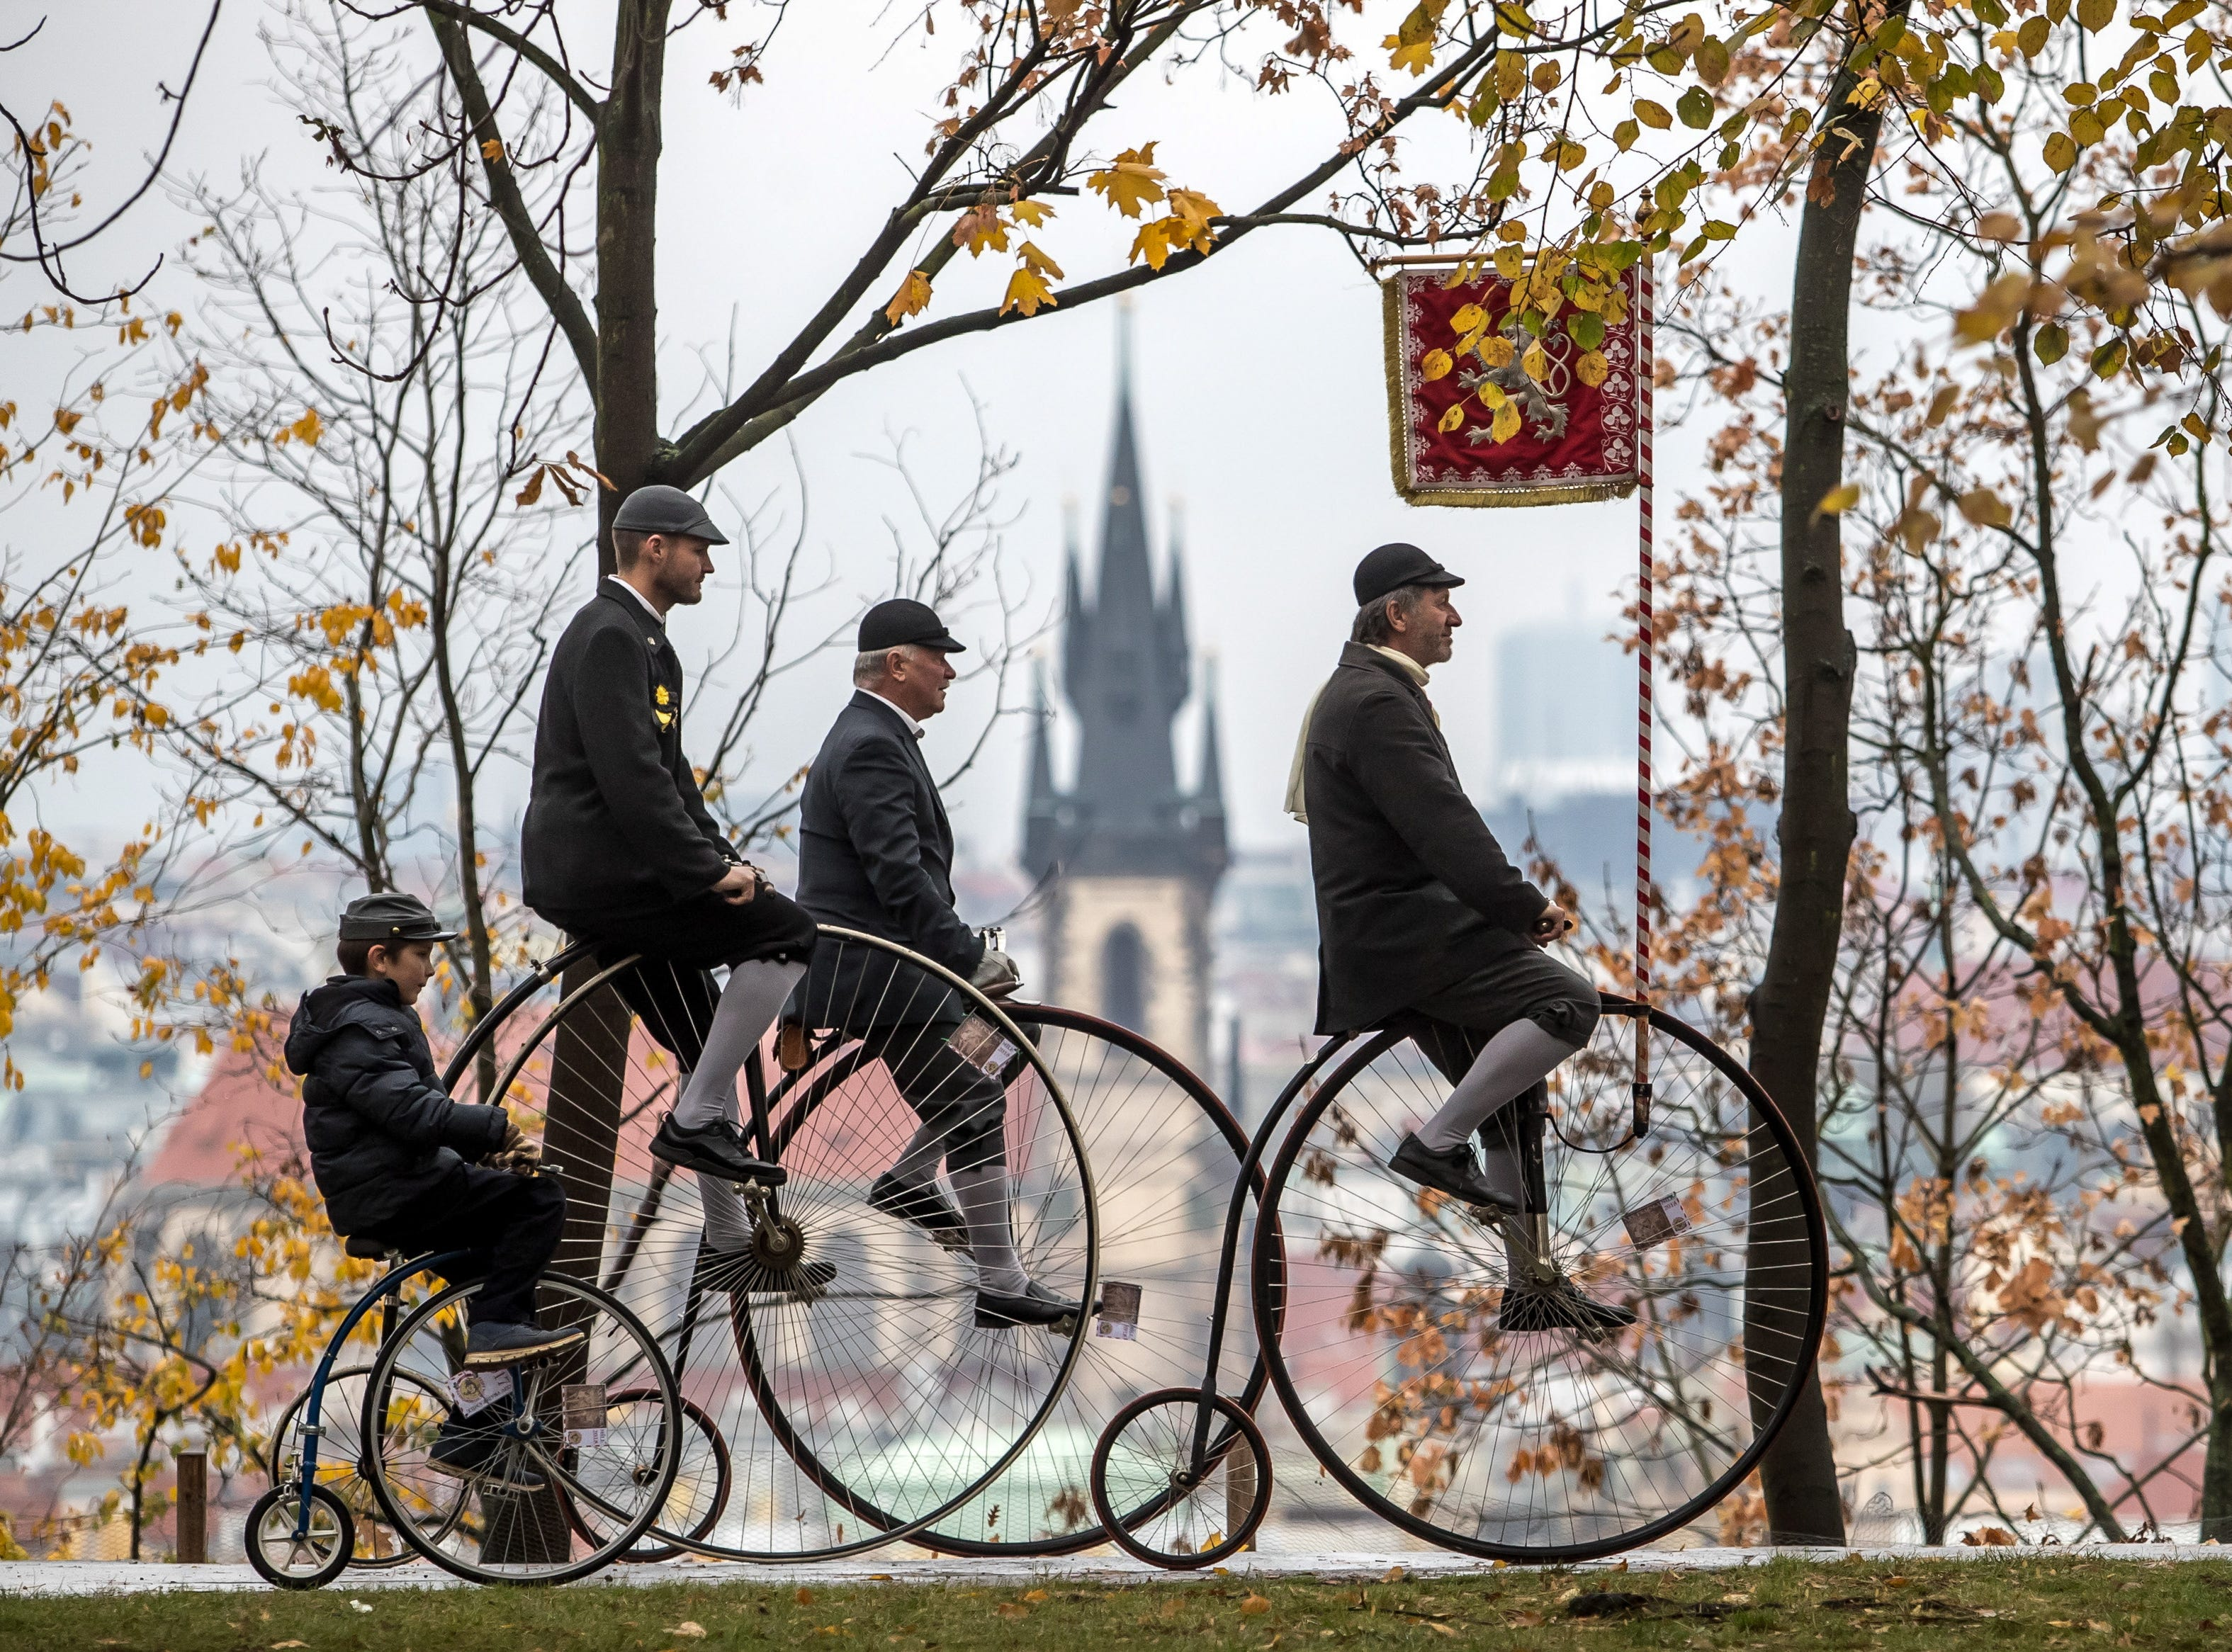 Participants wearing historical dress ride their high-wheels during the traditional 'Prague Mile' race, in Prague, Czech Republic on Nov. 3, 2018.